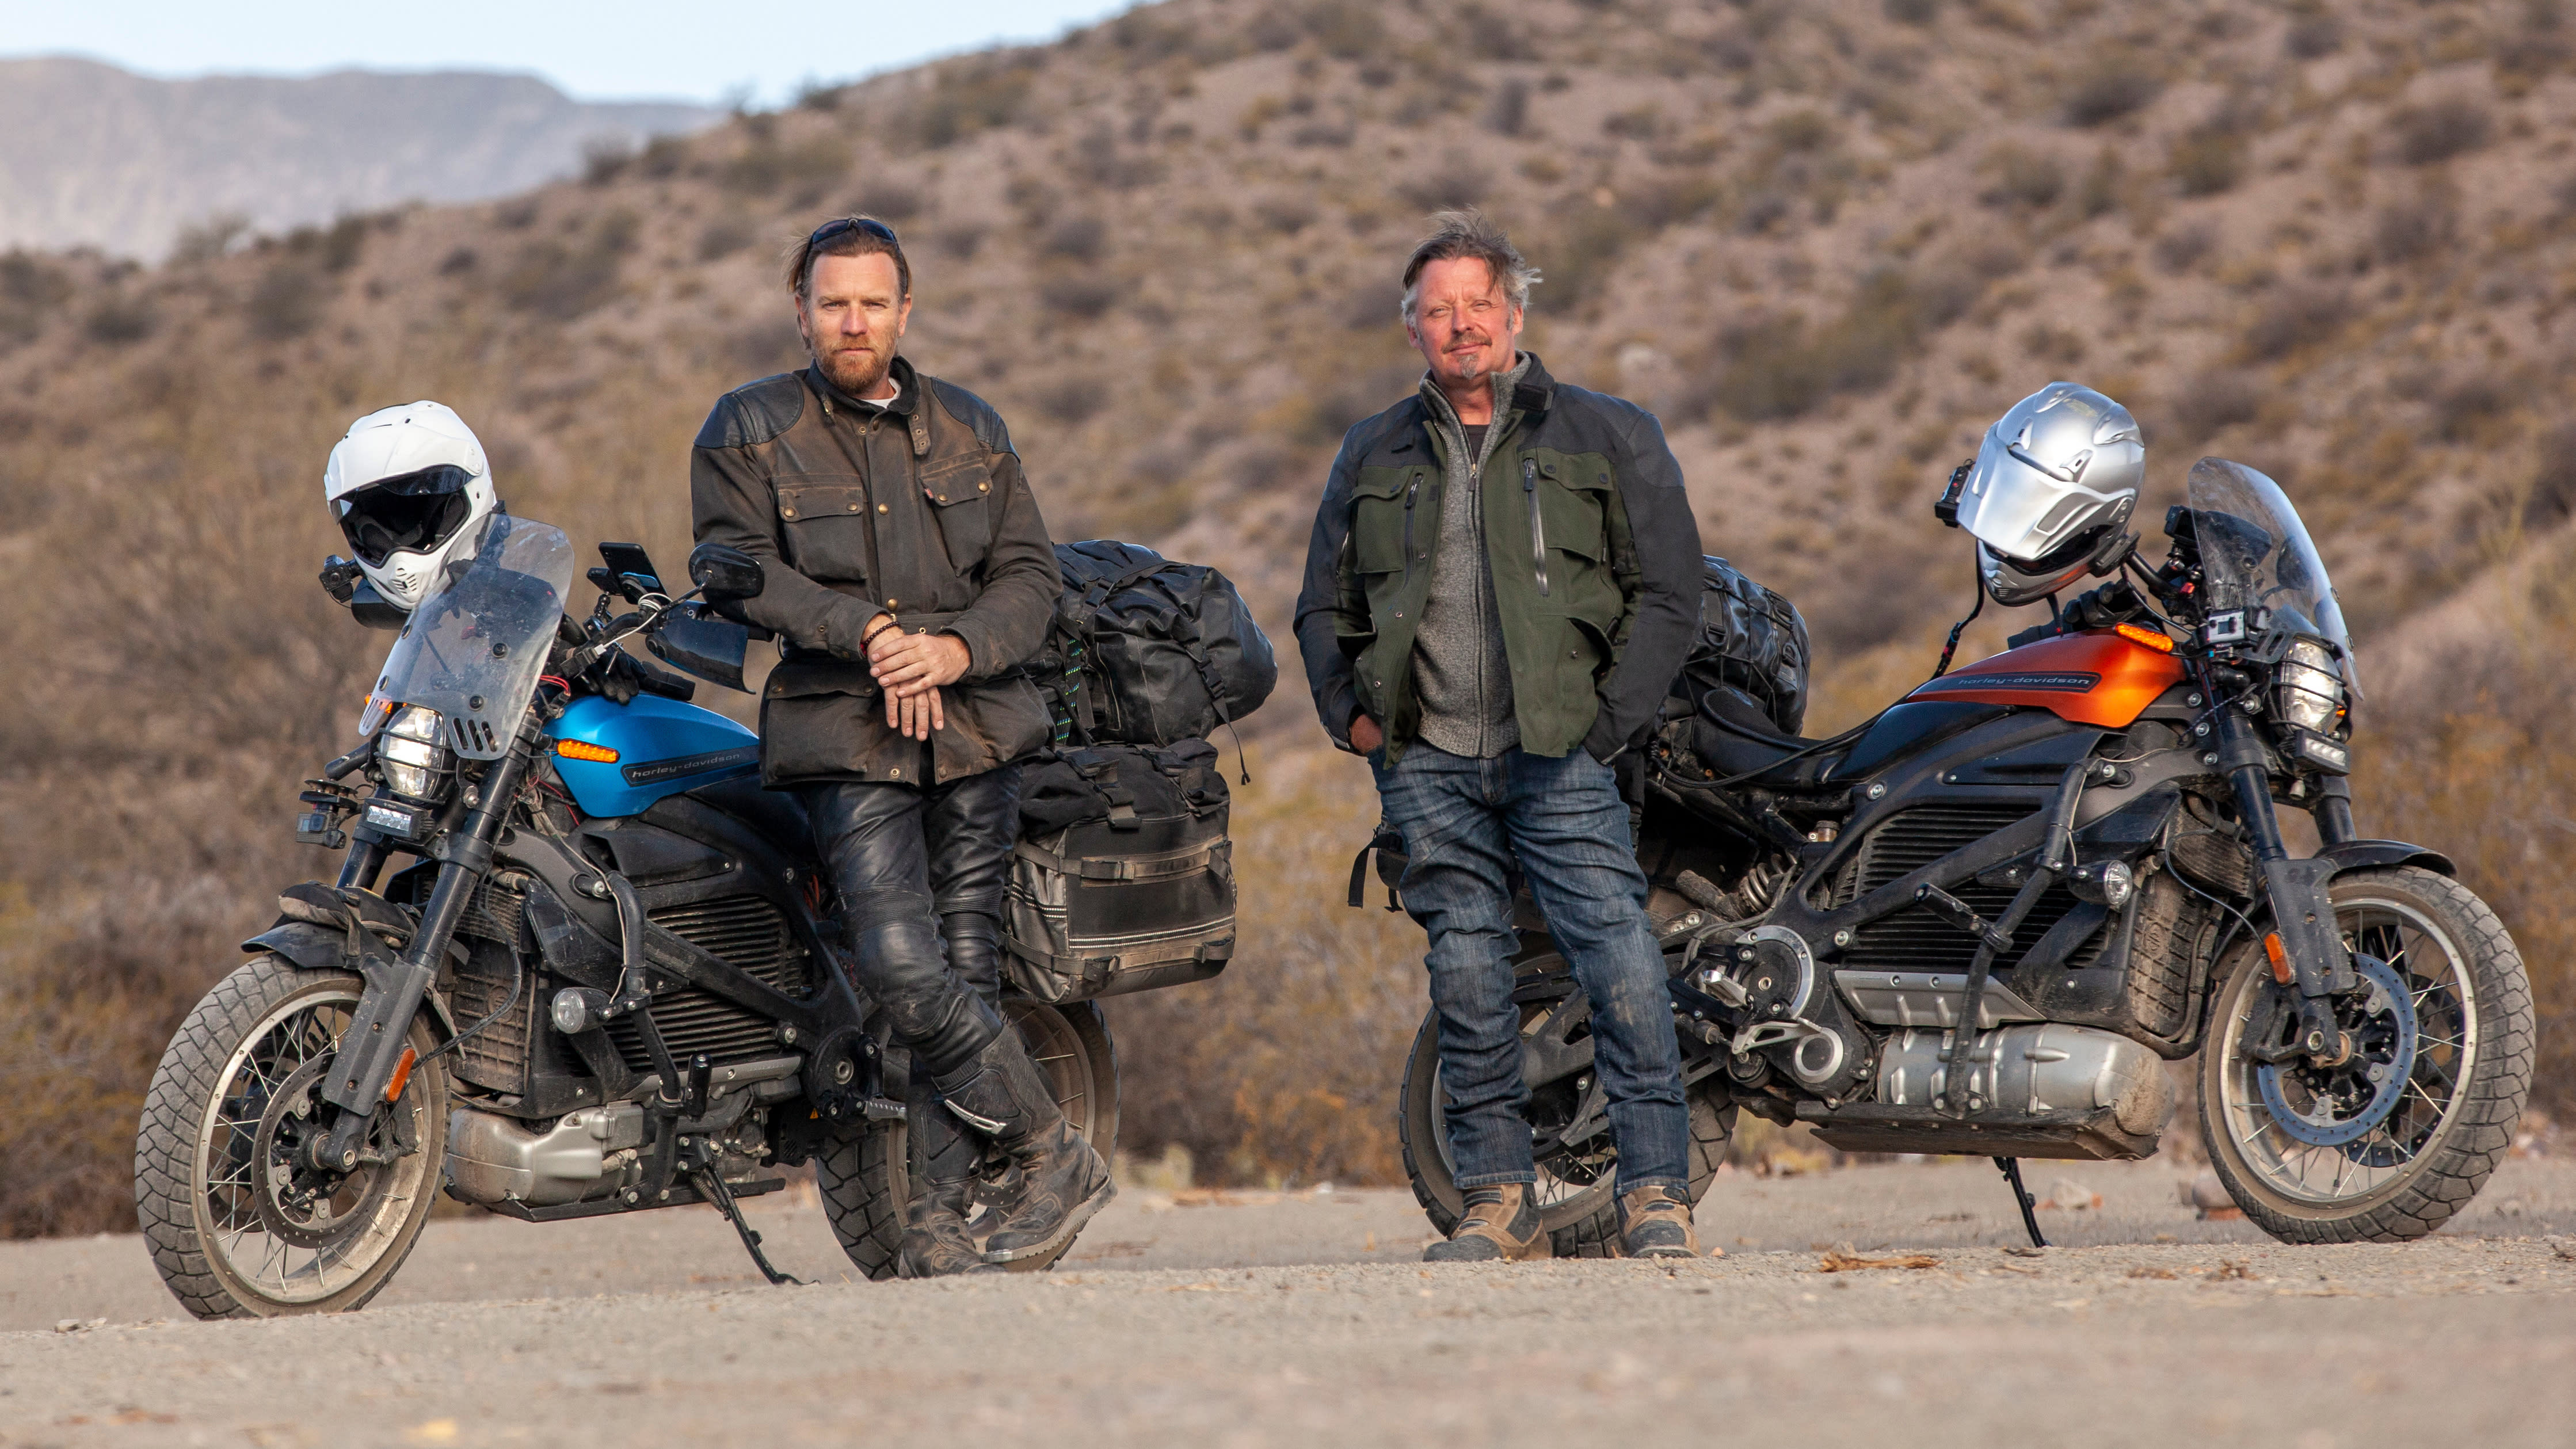 Ewan McGregor and Charley Boorman get on their bikes in 'Long Way Up'. (Credit: Apple TV+)